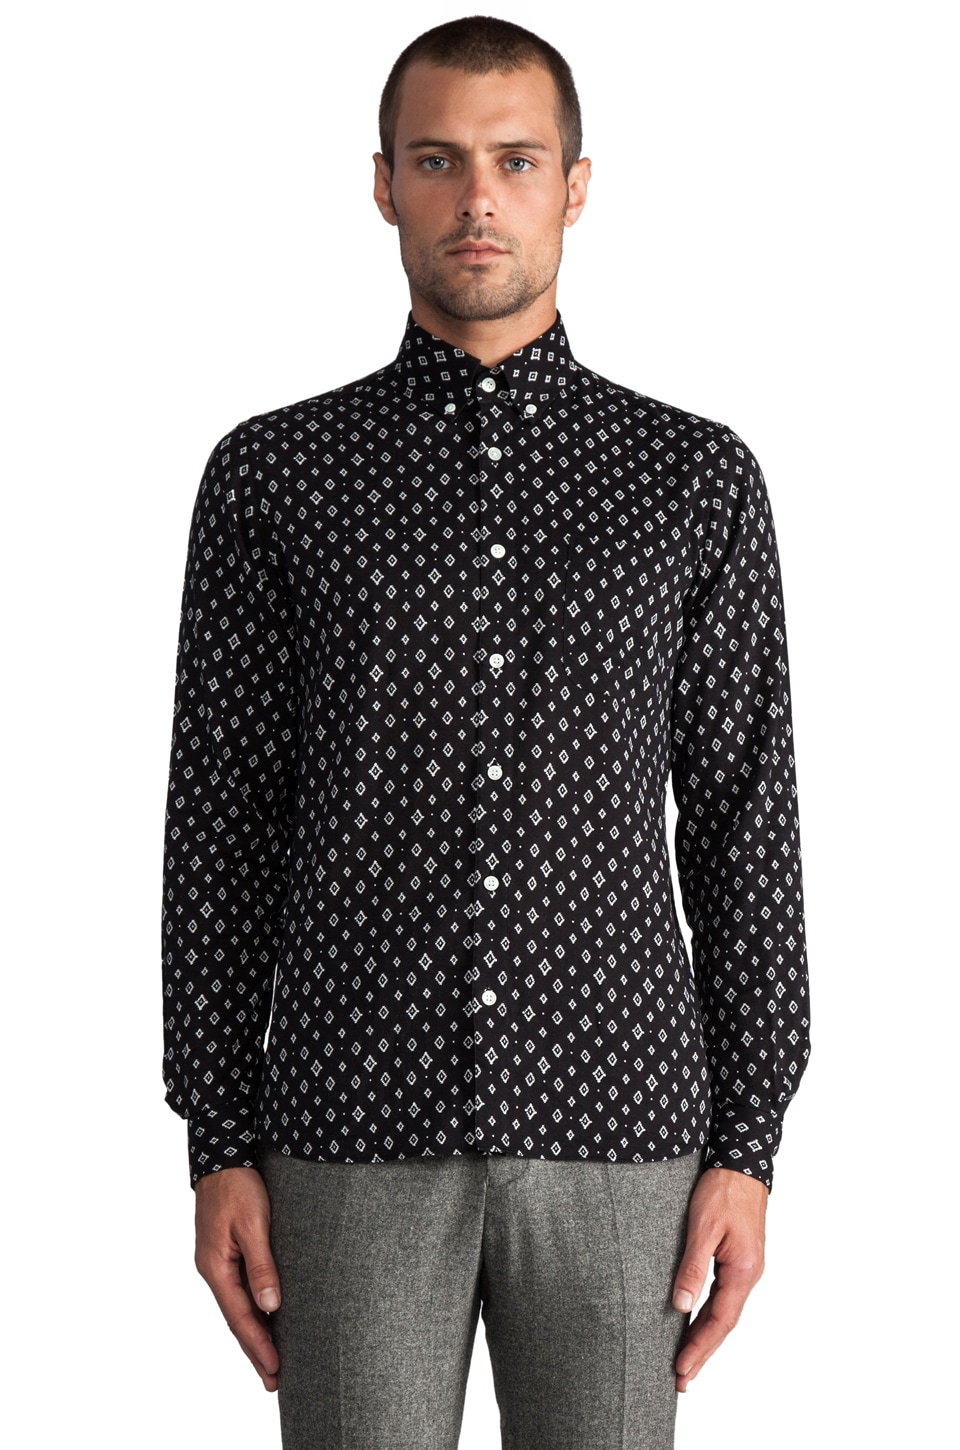 Hentsch Man Sunday Shirt in Black Stamp